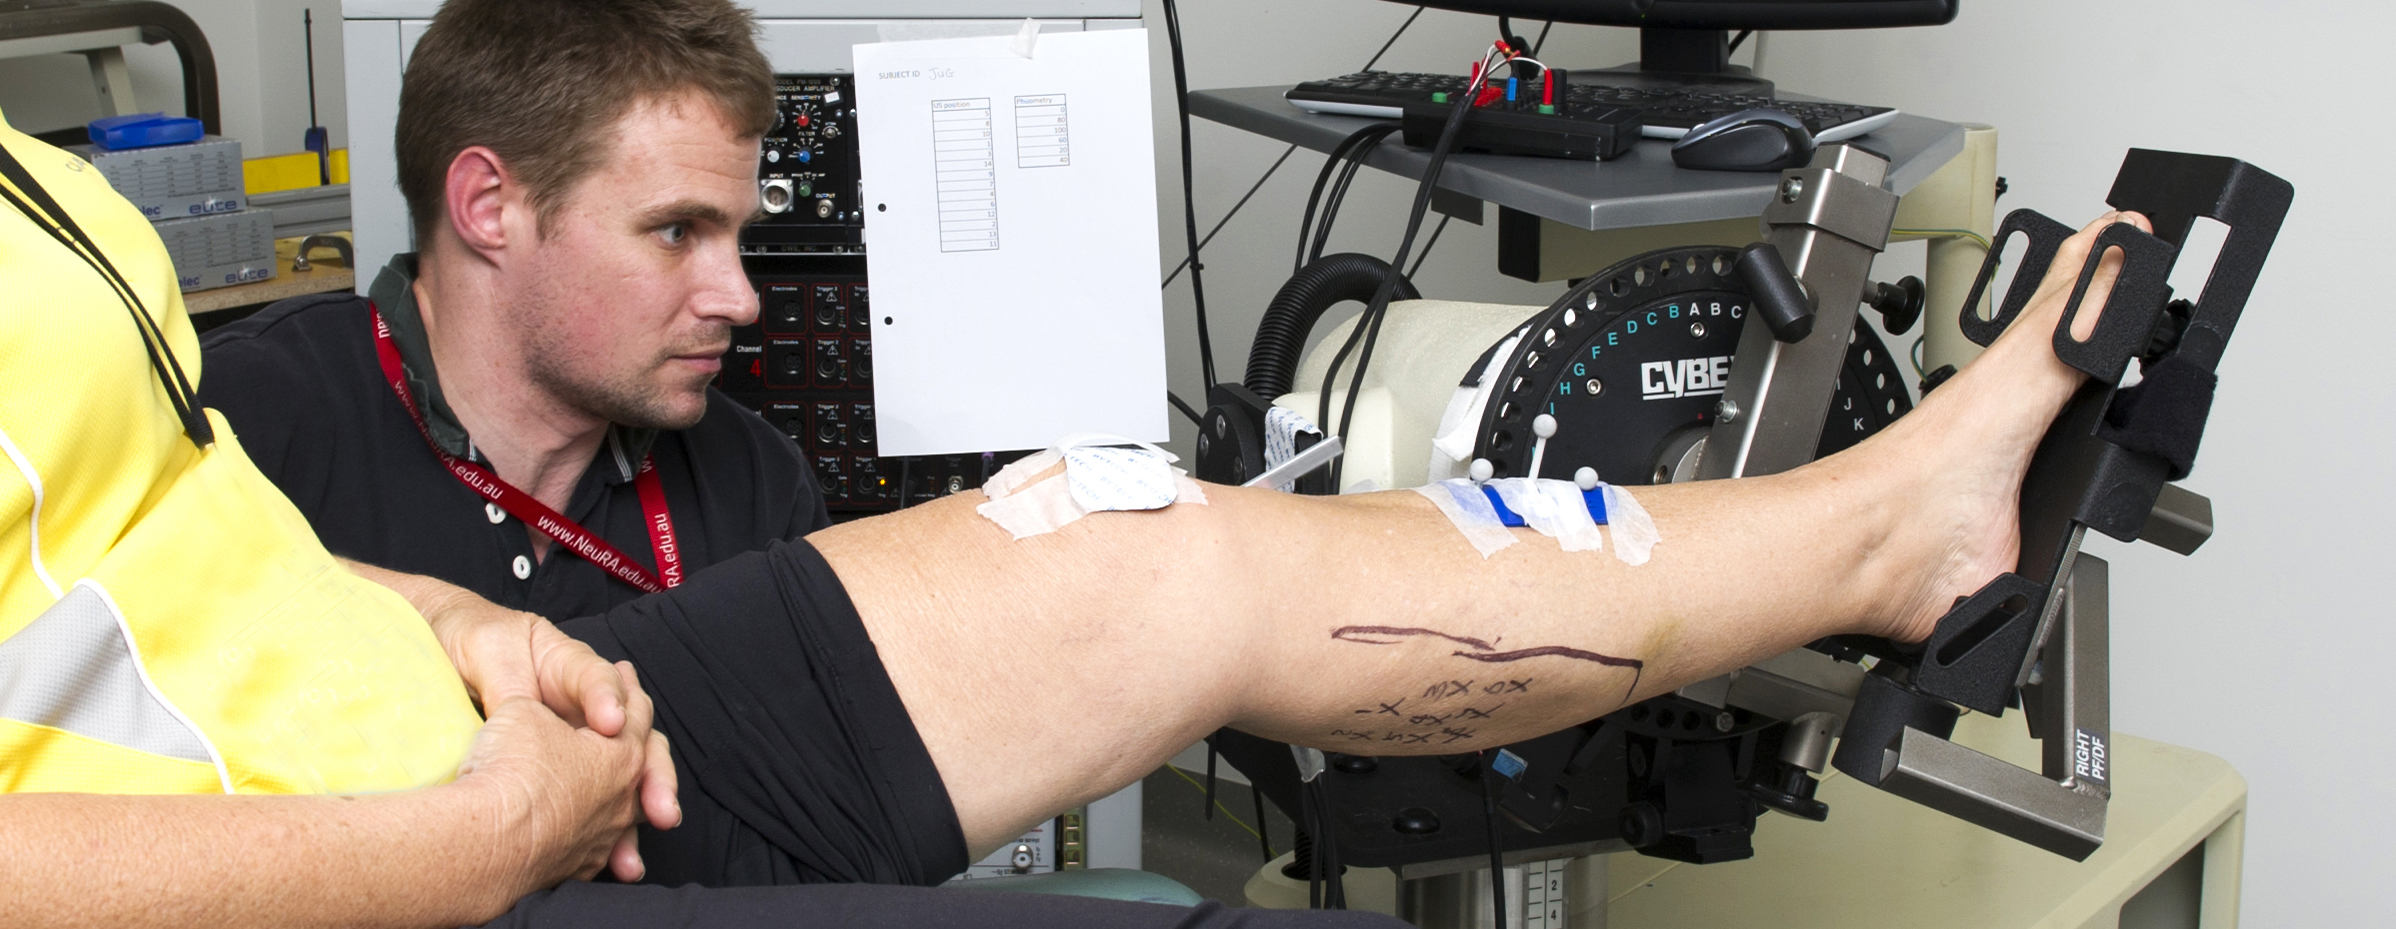 Researcher with participant's leg in study on muscle contracture